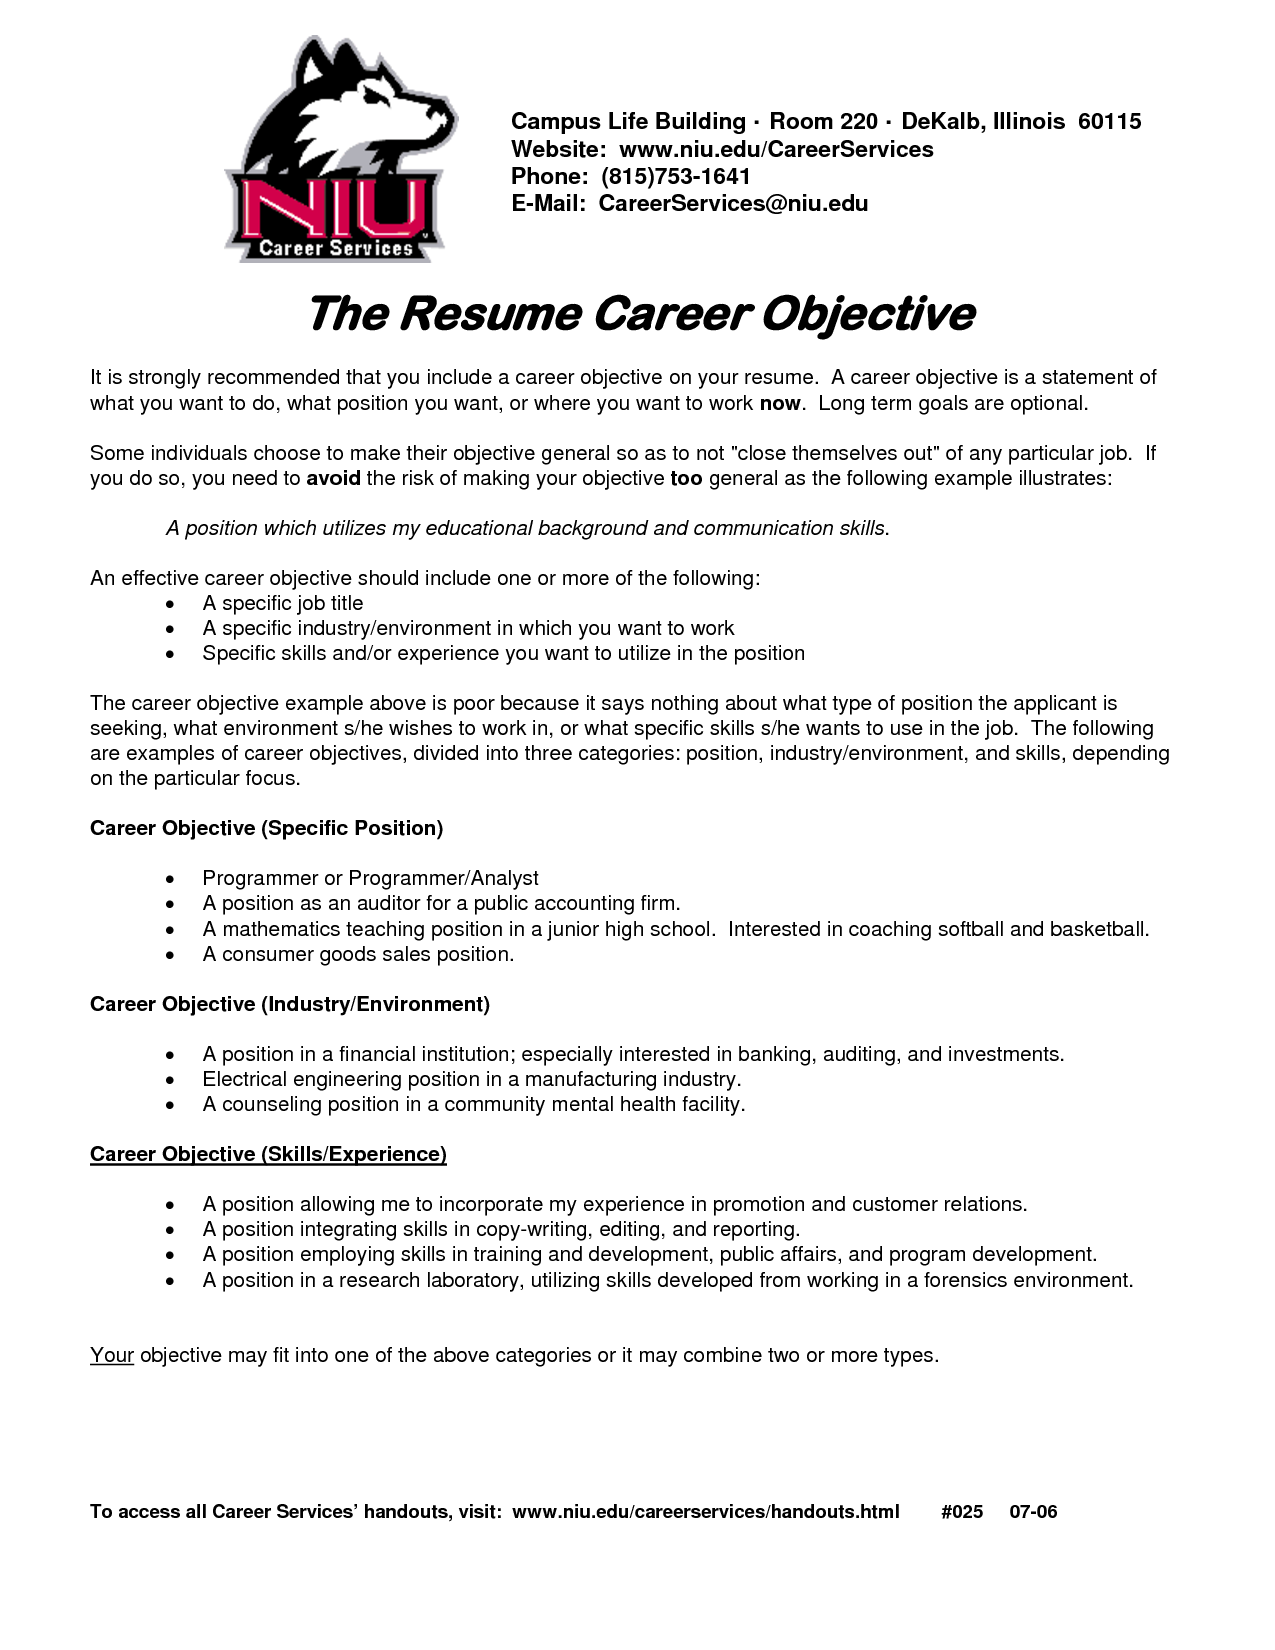 Objectives To Put On A Resume Httpswwwgooglesearchqobjective Resume  Resume